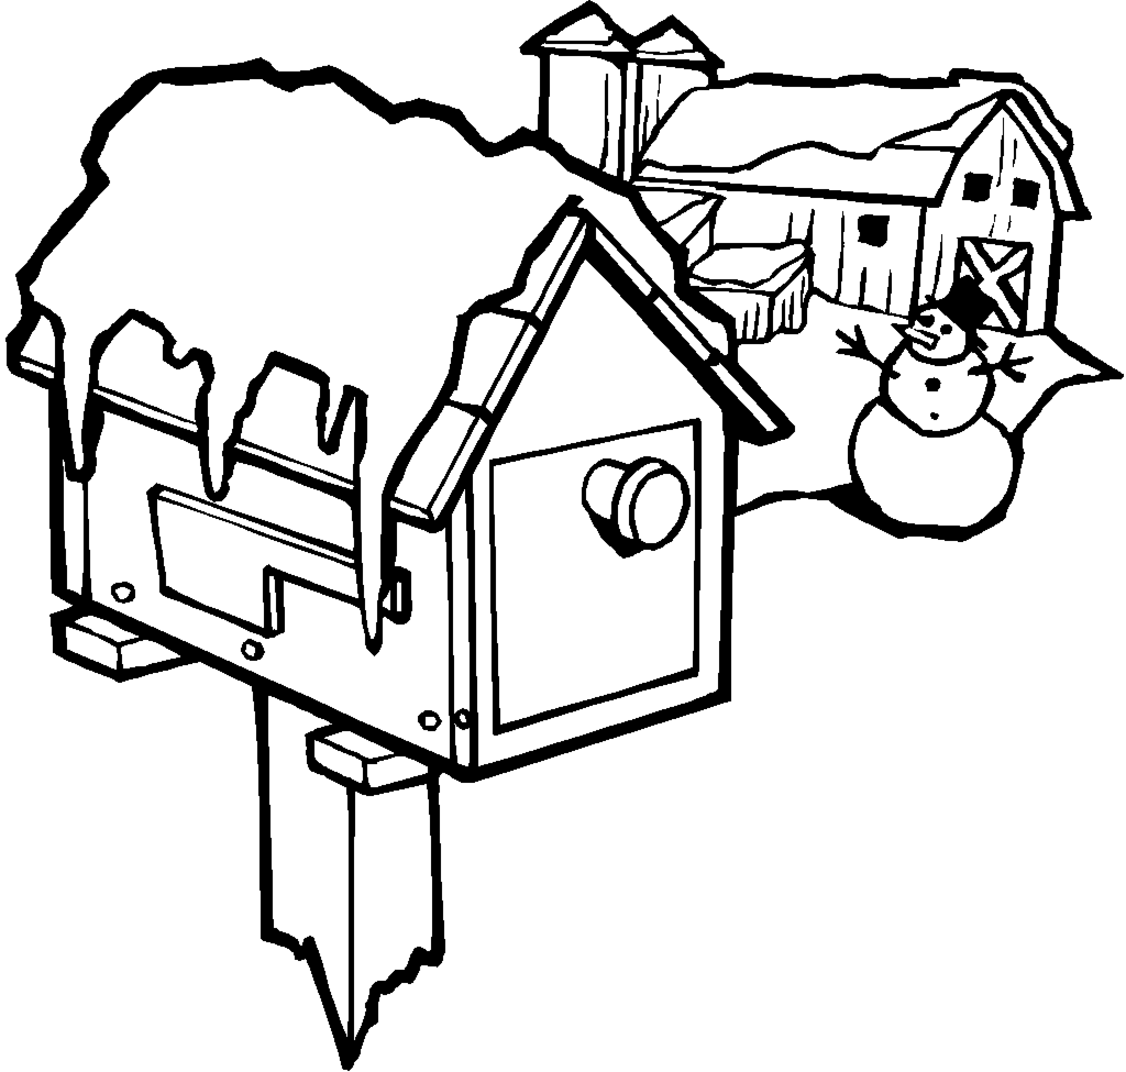 1126x1072 Awesome Merry Christmas Clip Art Black White With